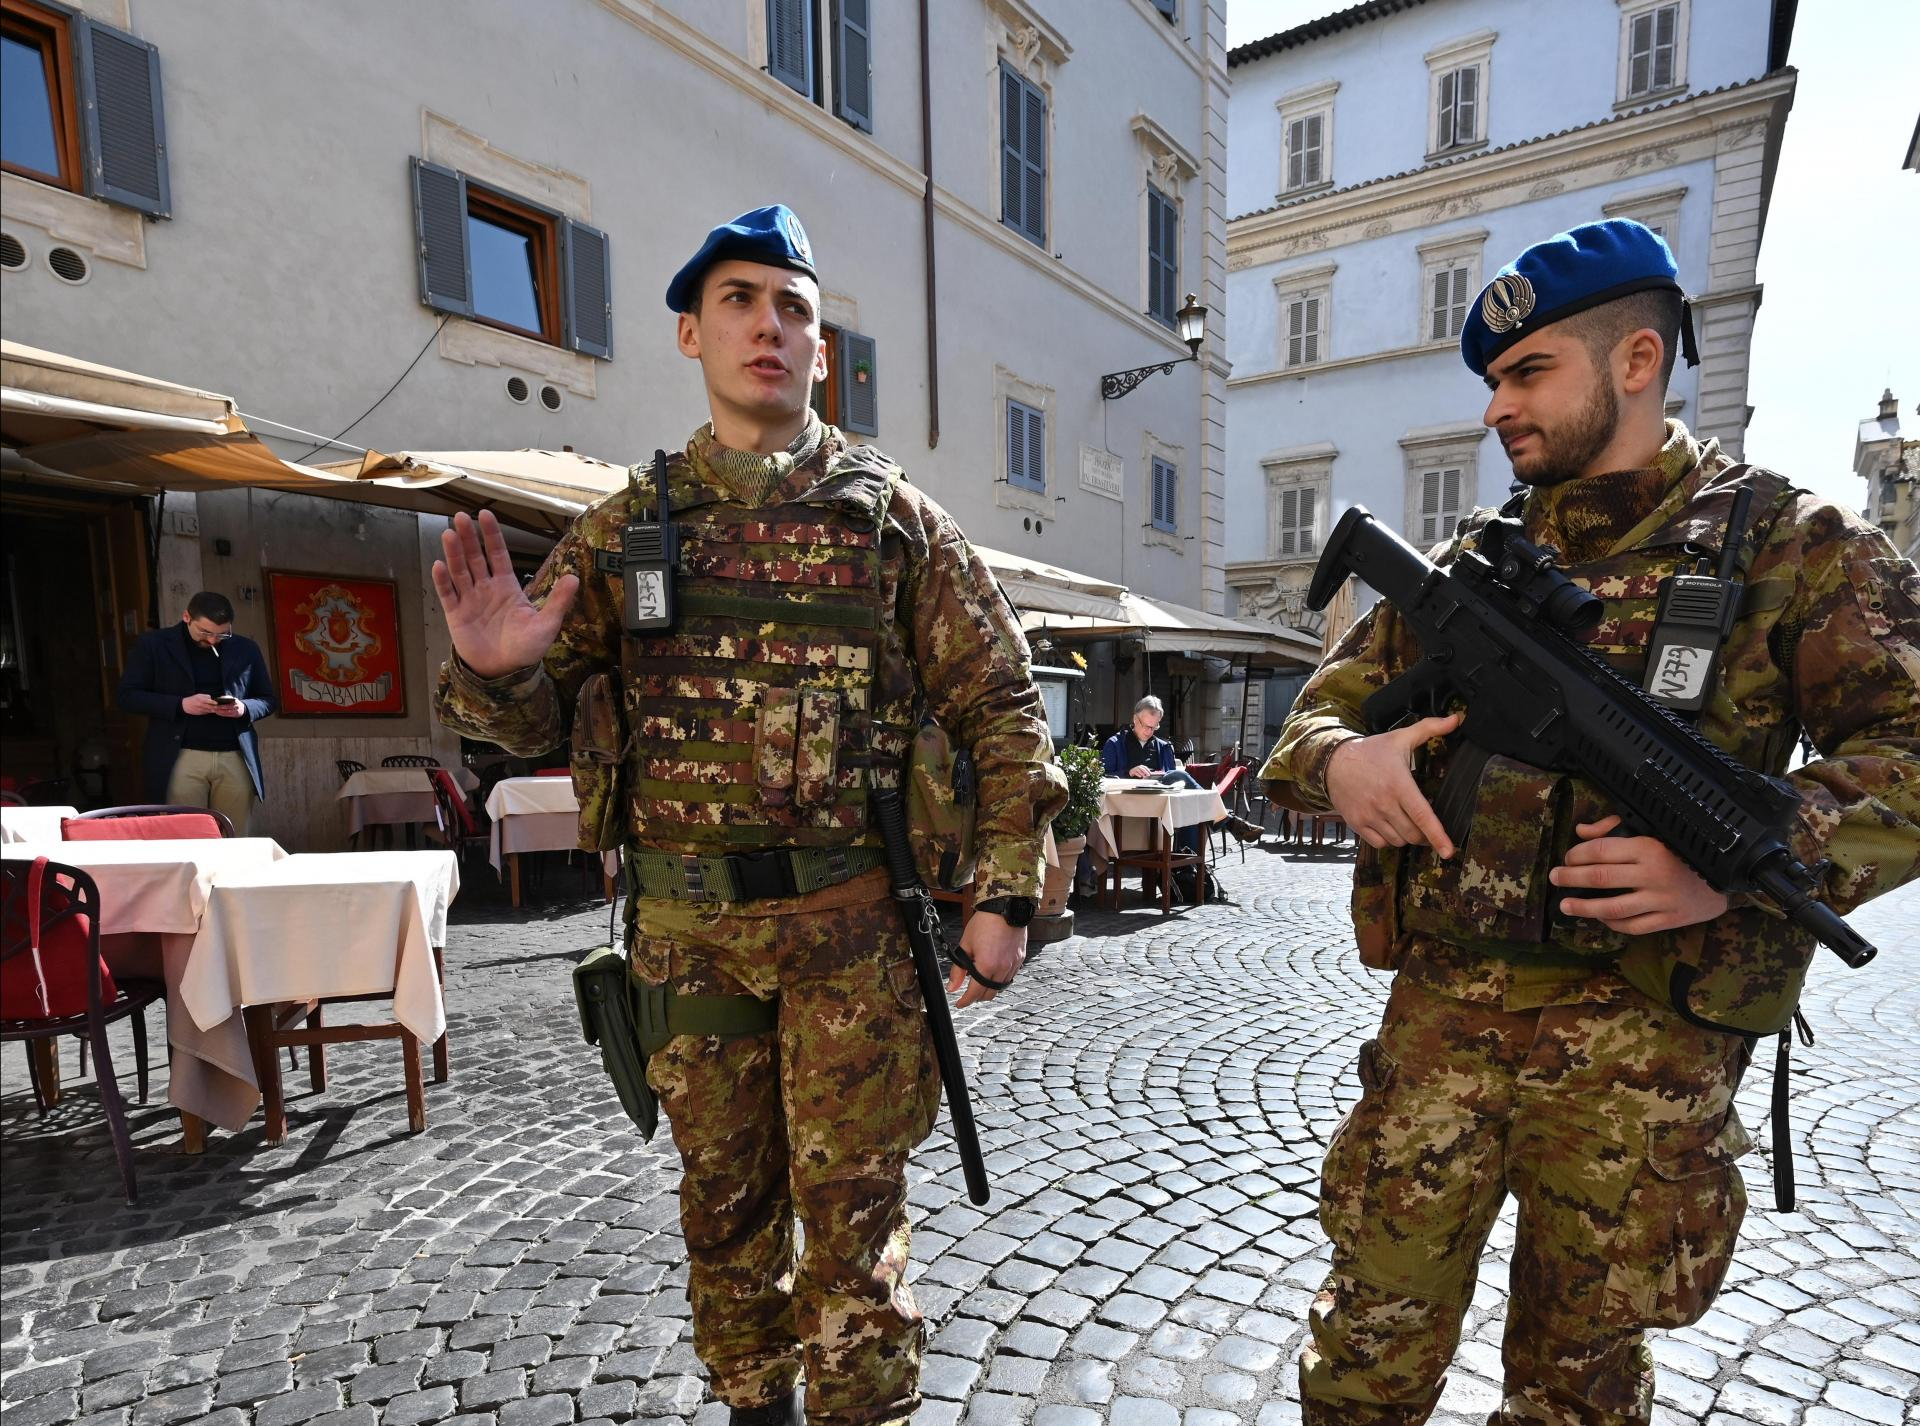 Soldiers patrol past an empty restaurant in the Trastevere district of Rome. Photo: AFP